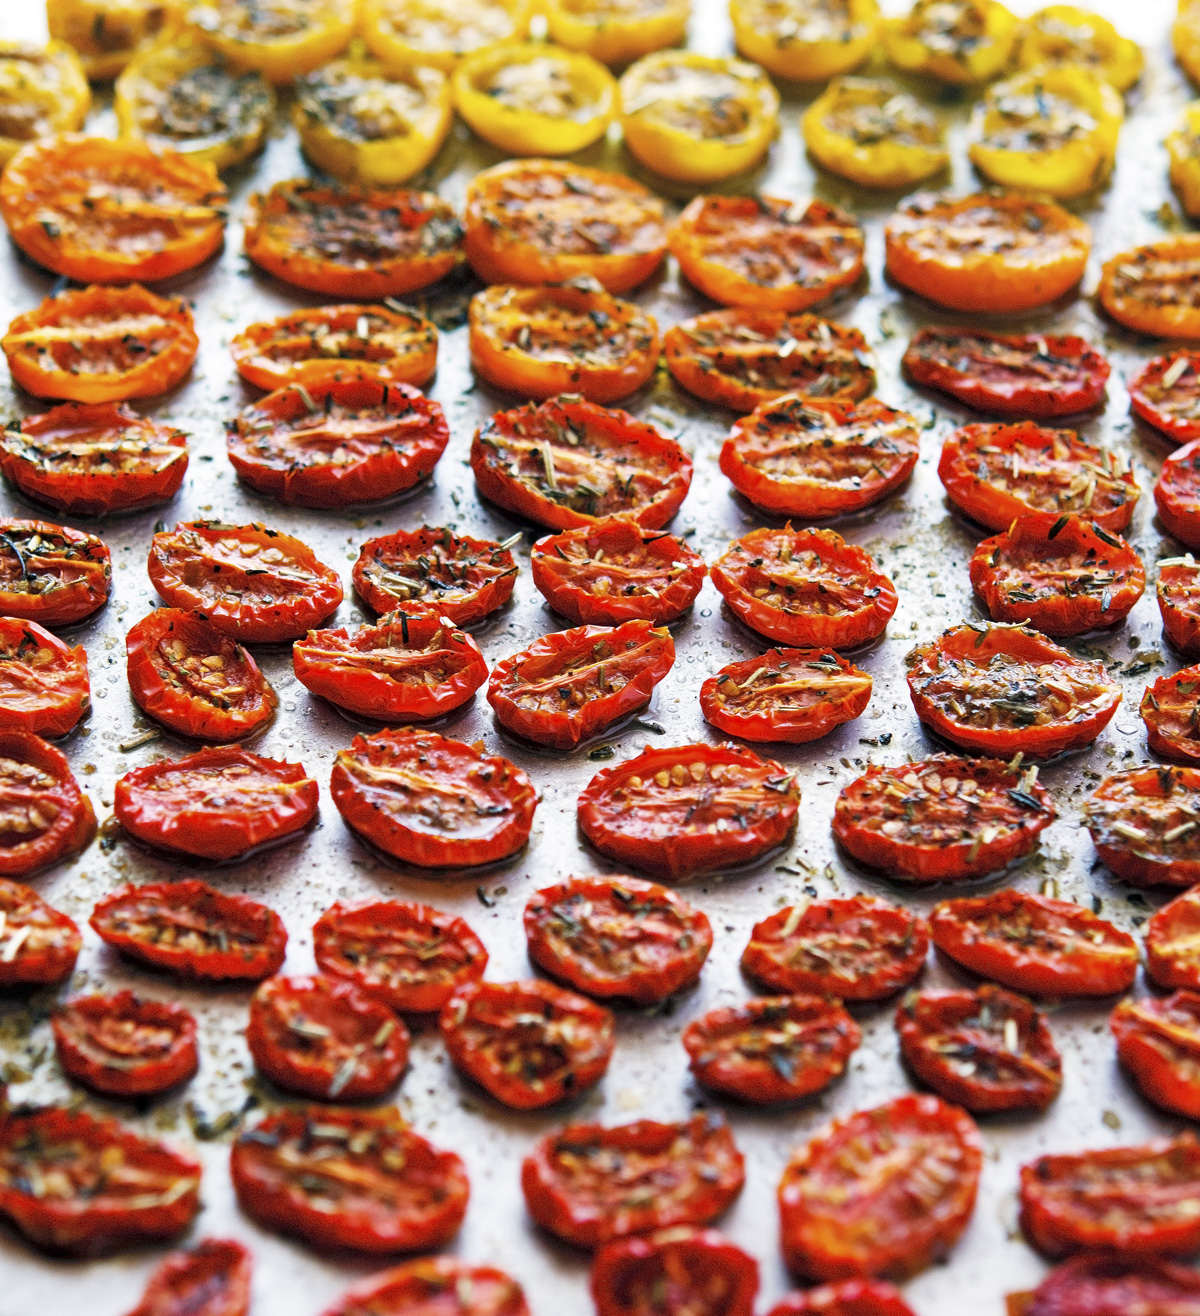 Provencal Slow-Roasted Tomatoes